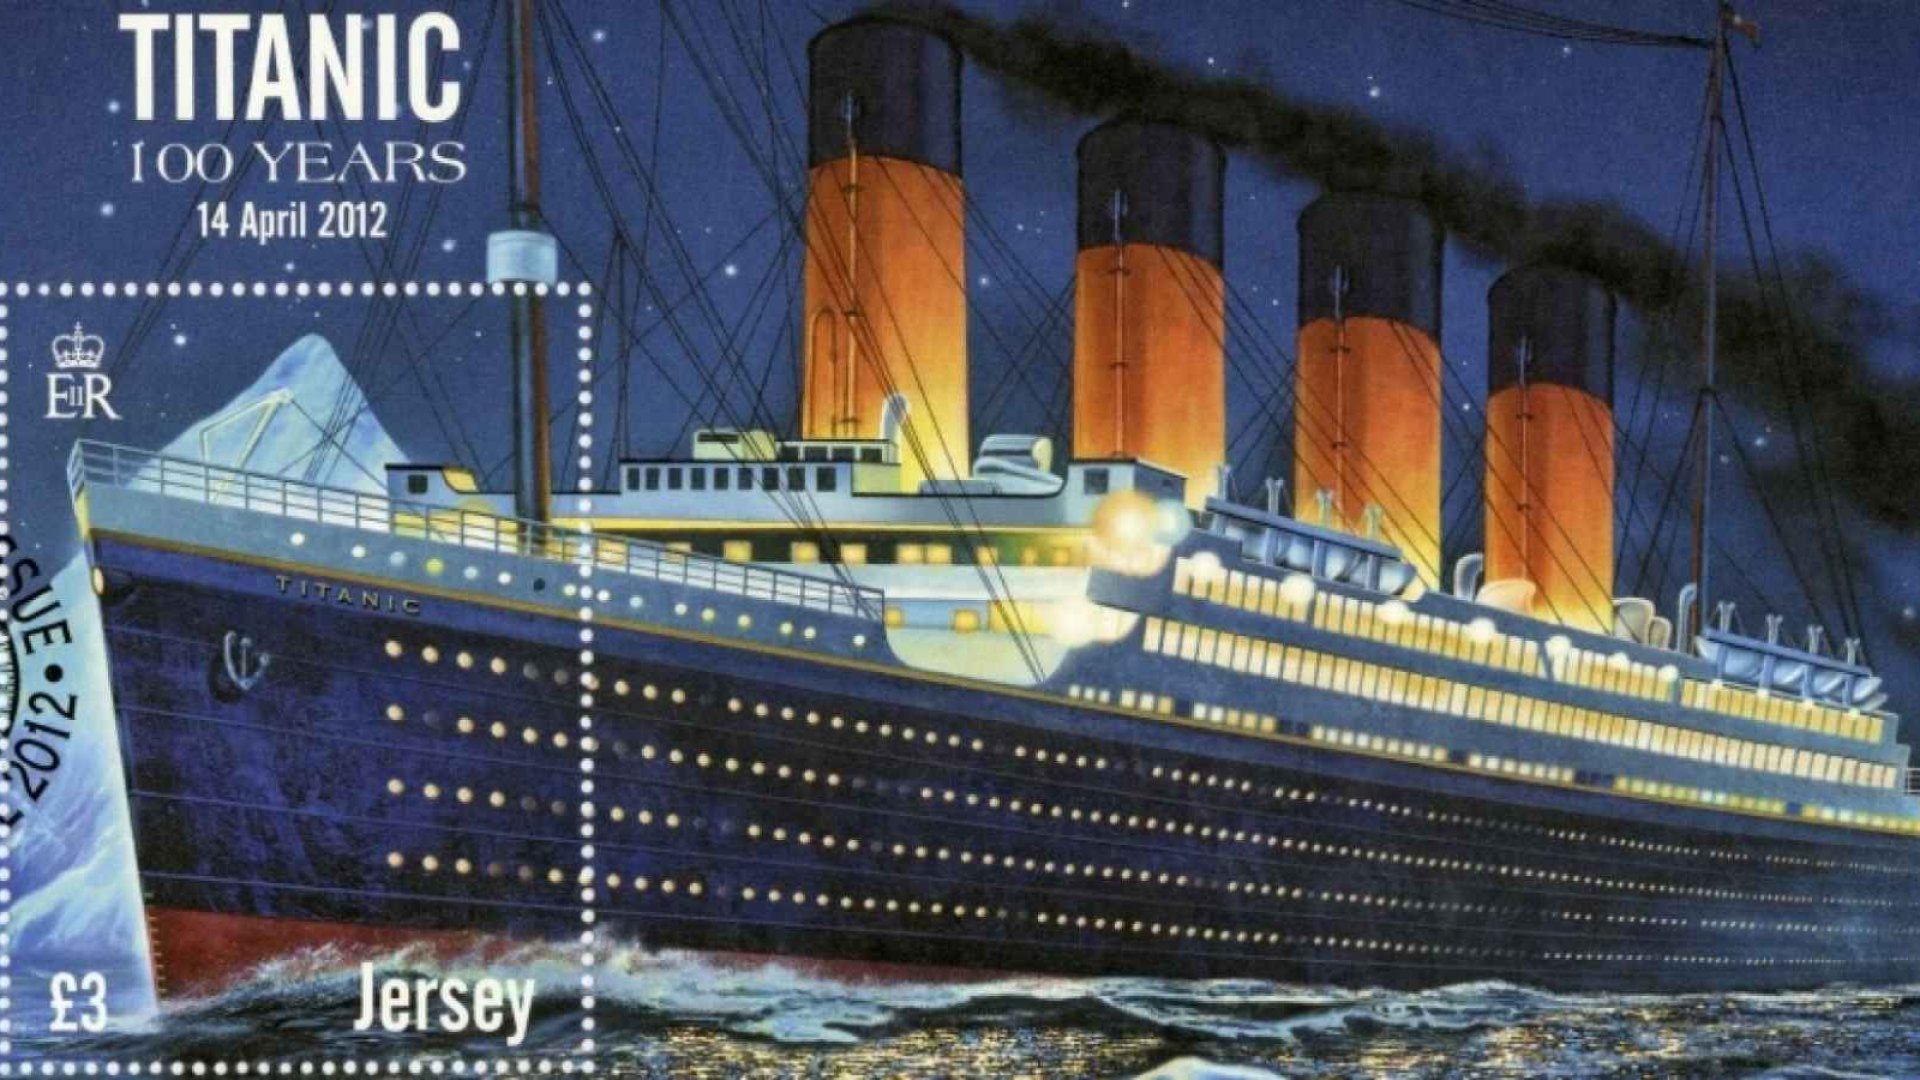 Leading as the Newcomer: Not Every Ship is the Titanic